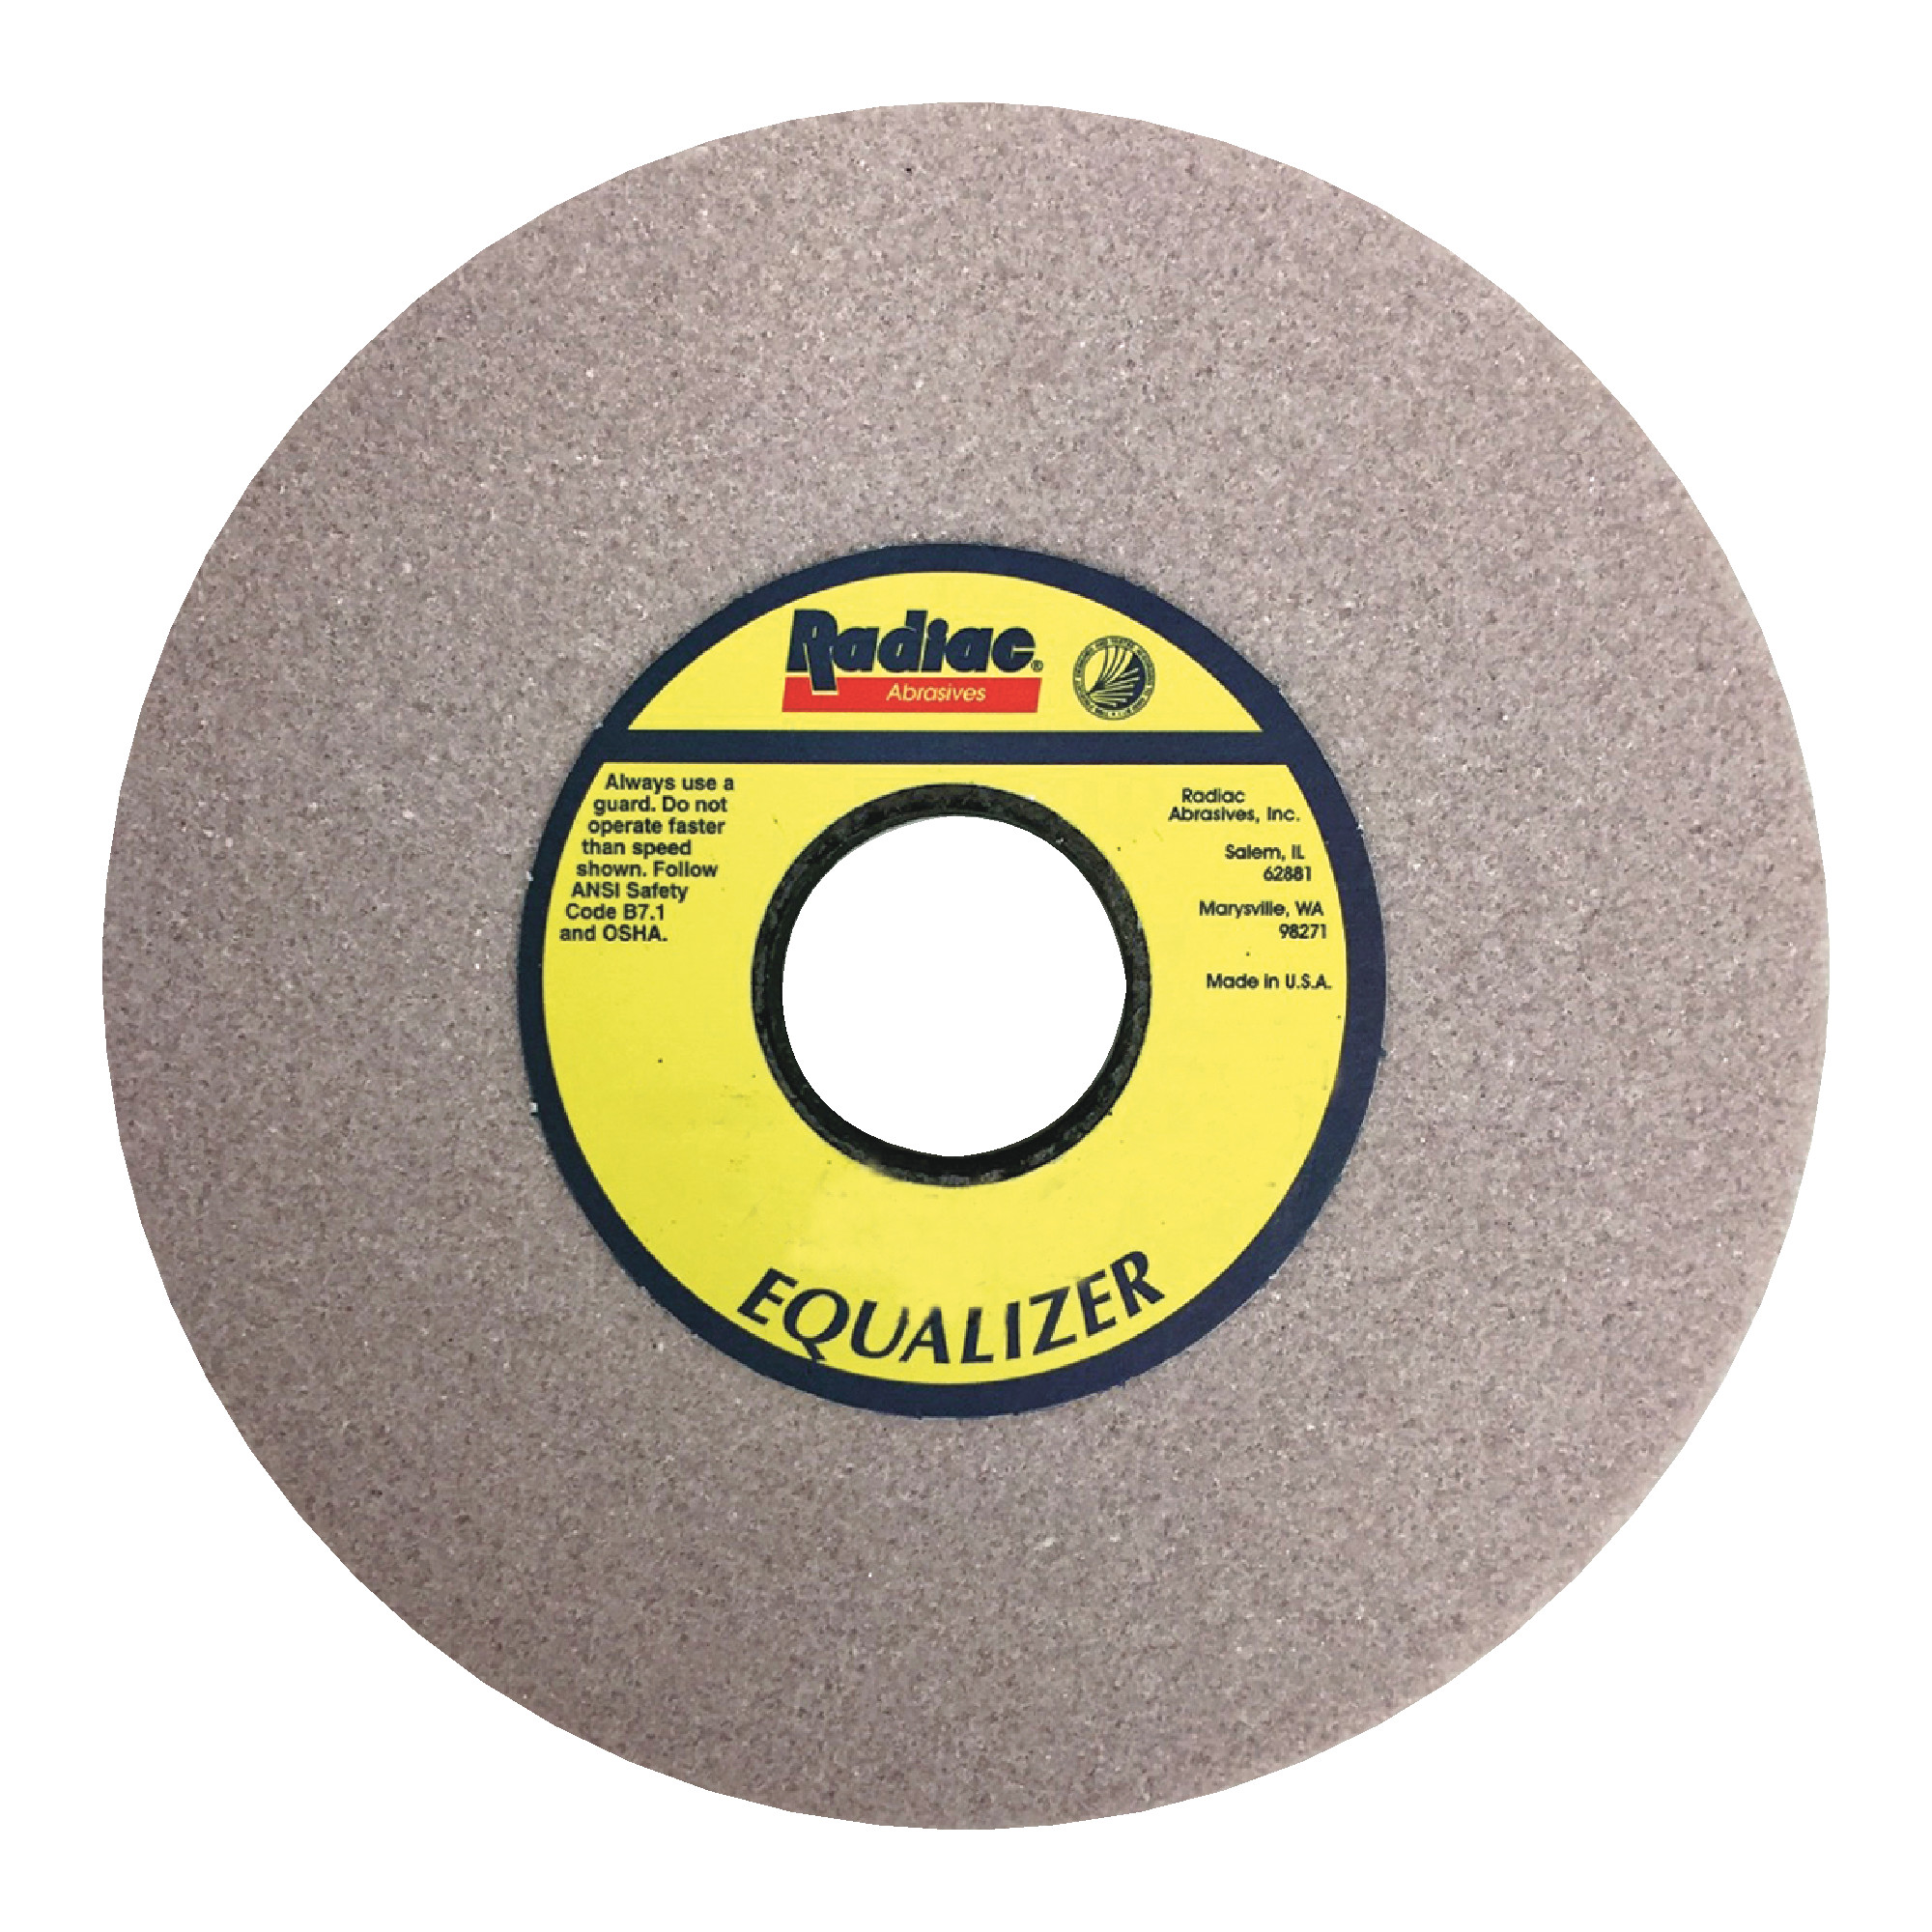 32A Surface Grinding Wheel